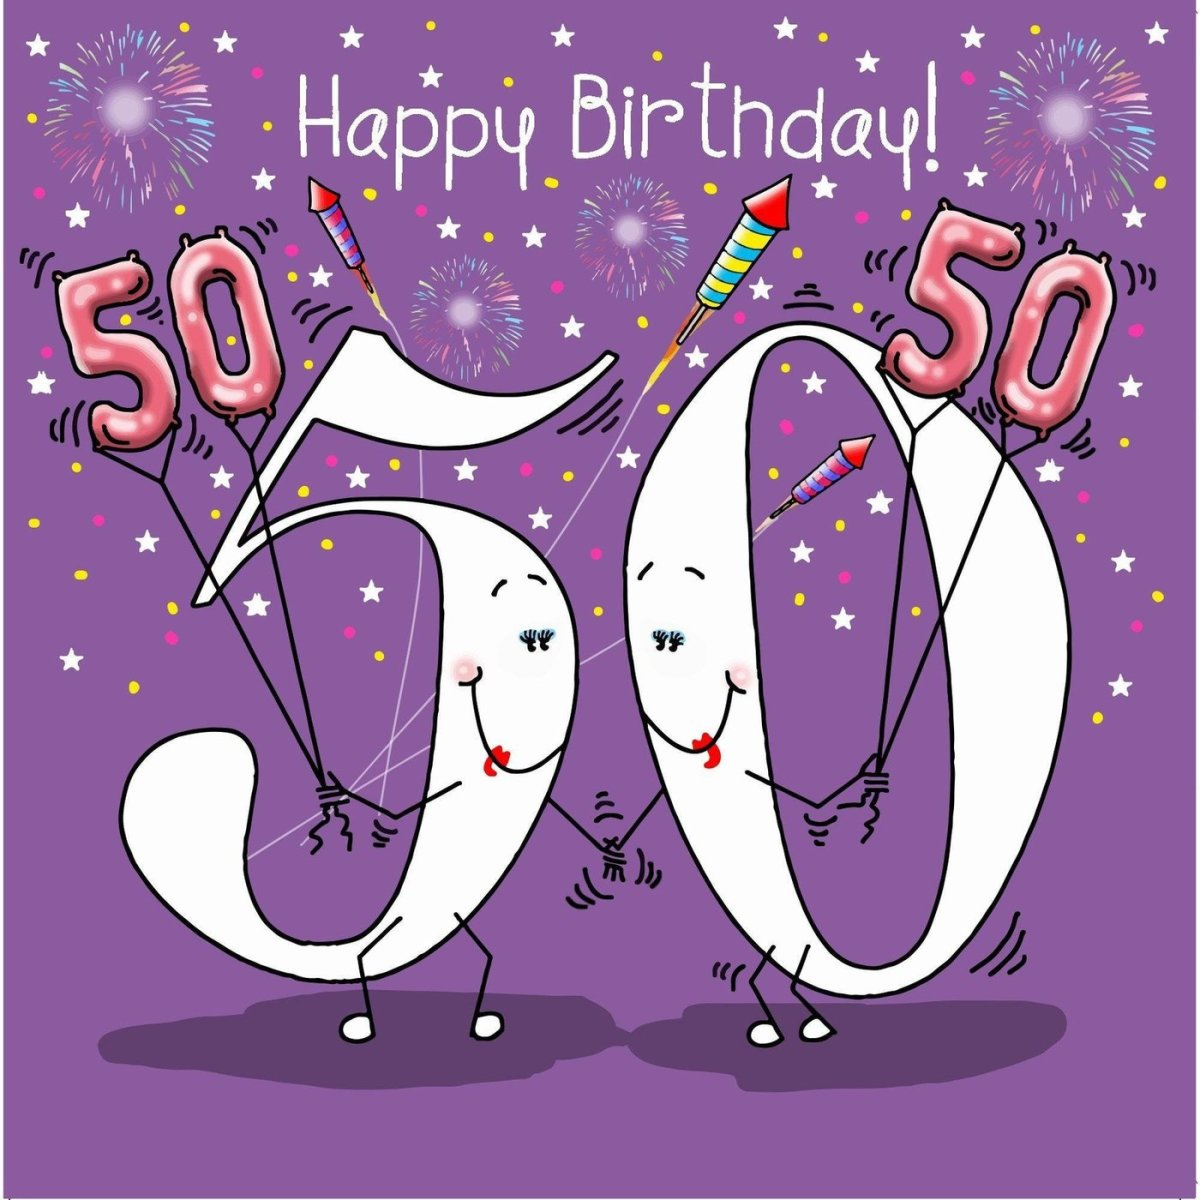 50 Reflections On Turning 50